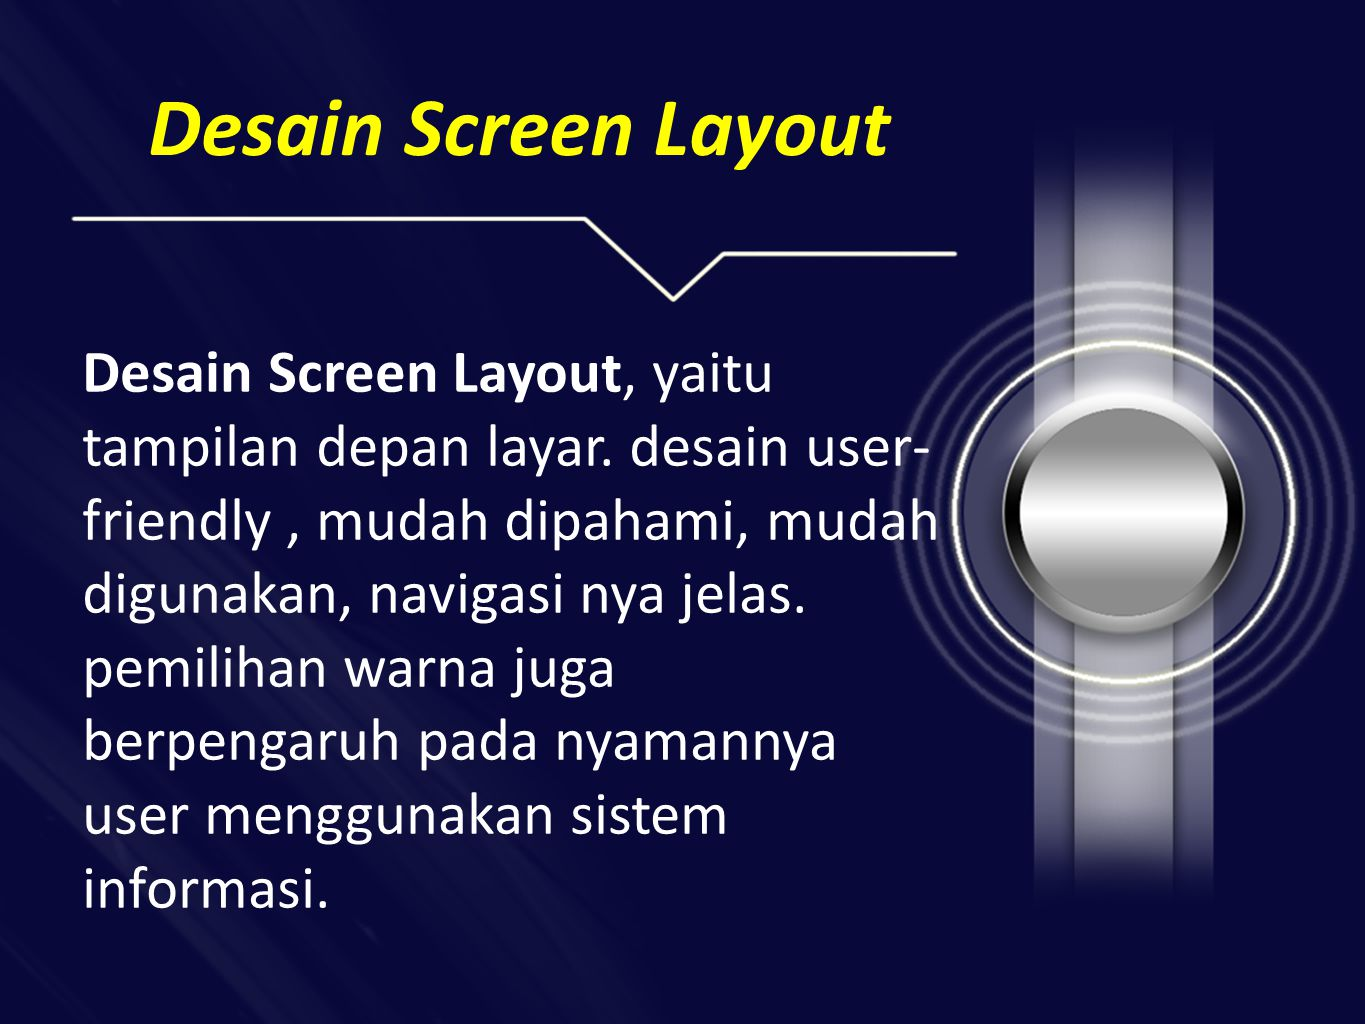 Desain Screen Layout